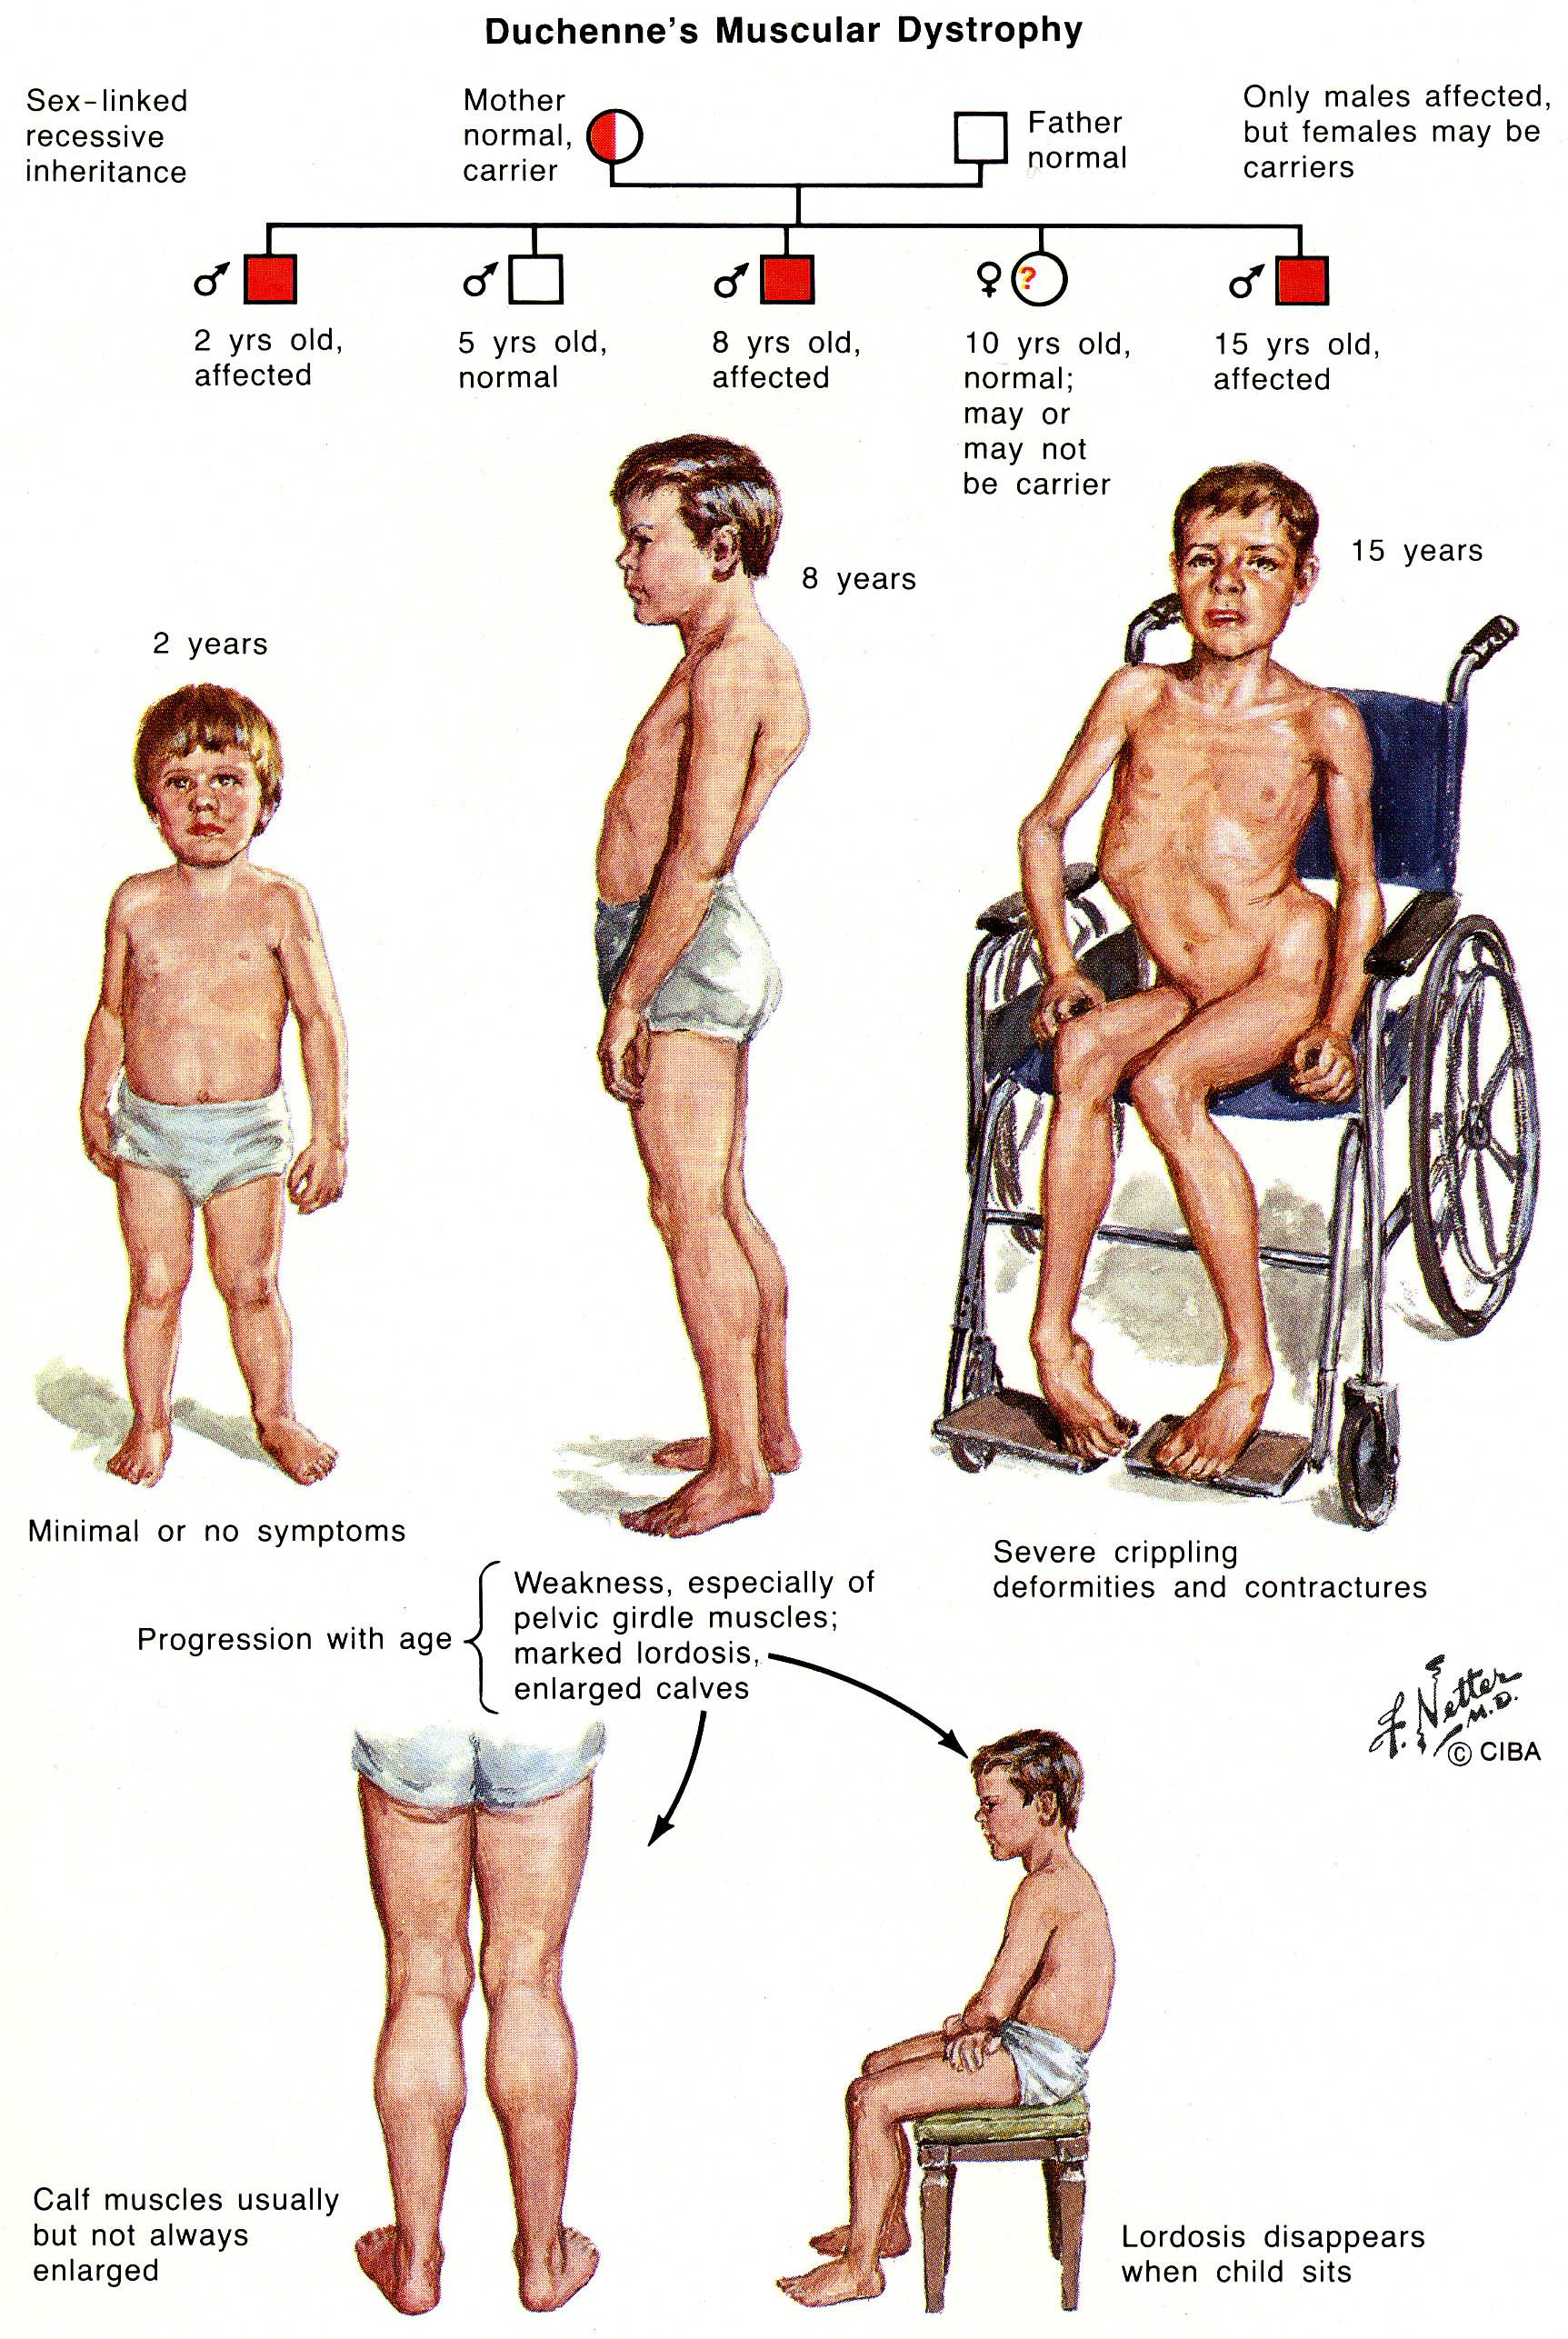 Duchenne Muscular Dystrophy Symptoms Toddlers Pin By Julie Ruhl On Duchenne Muscular Dystrophy Muscular